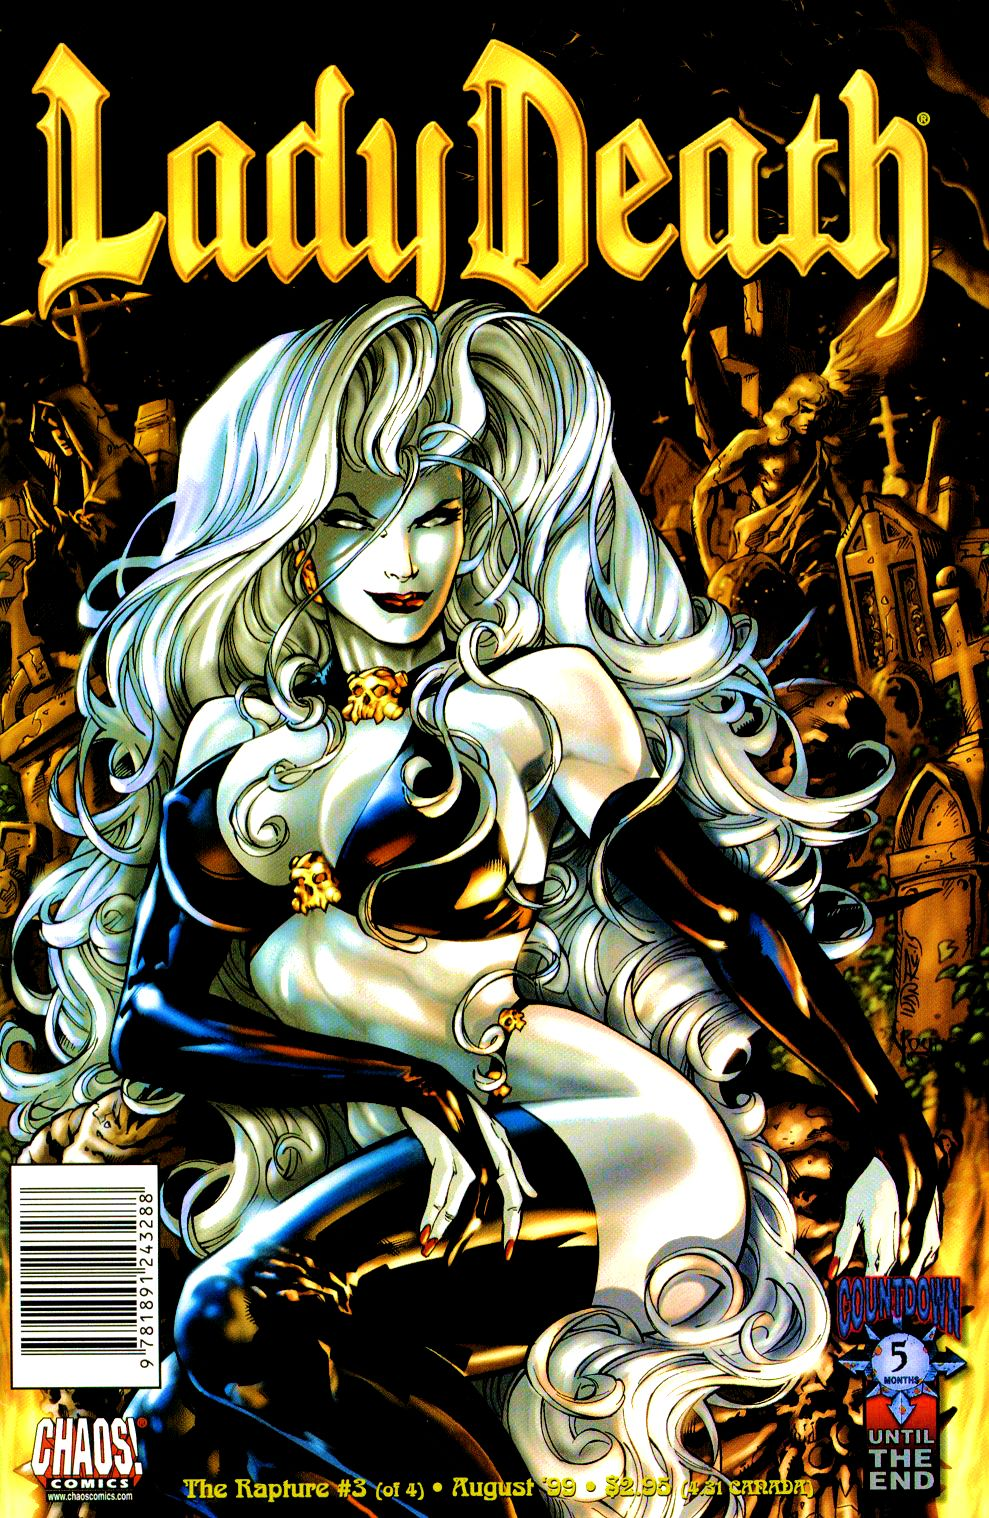 Lady Death: The Rapture issue 3 - Page 1